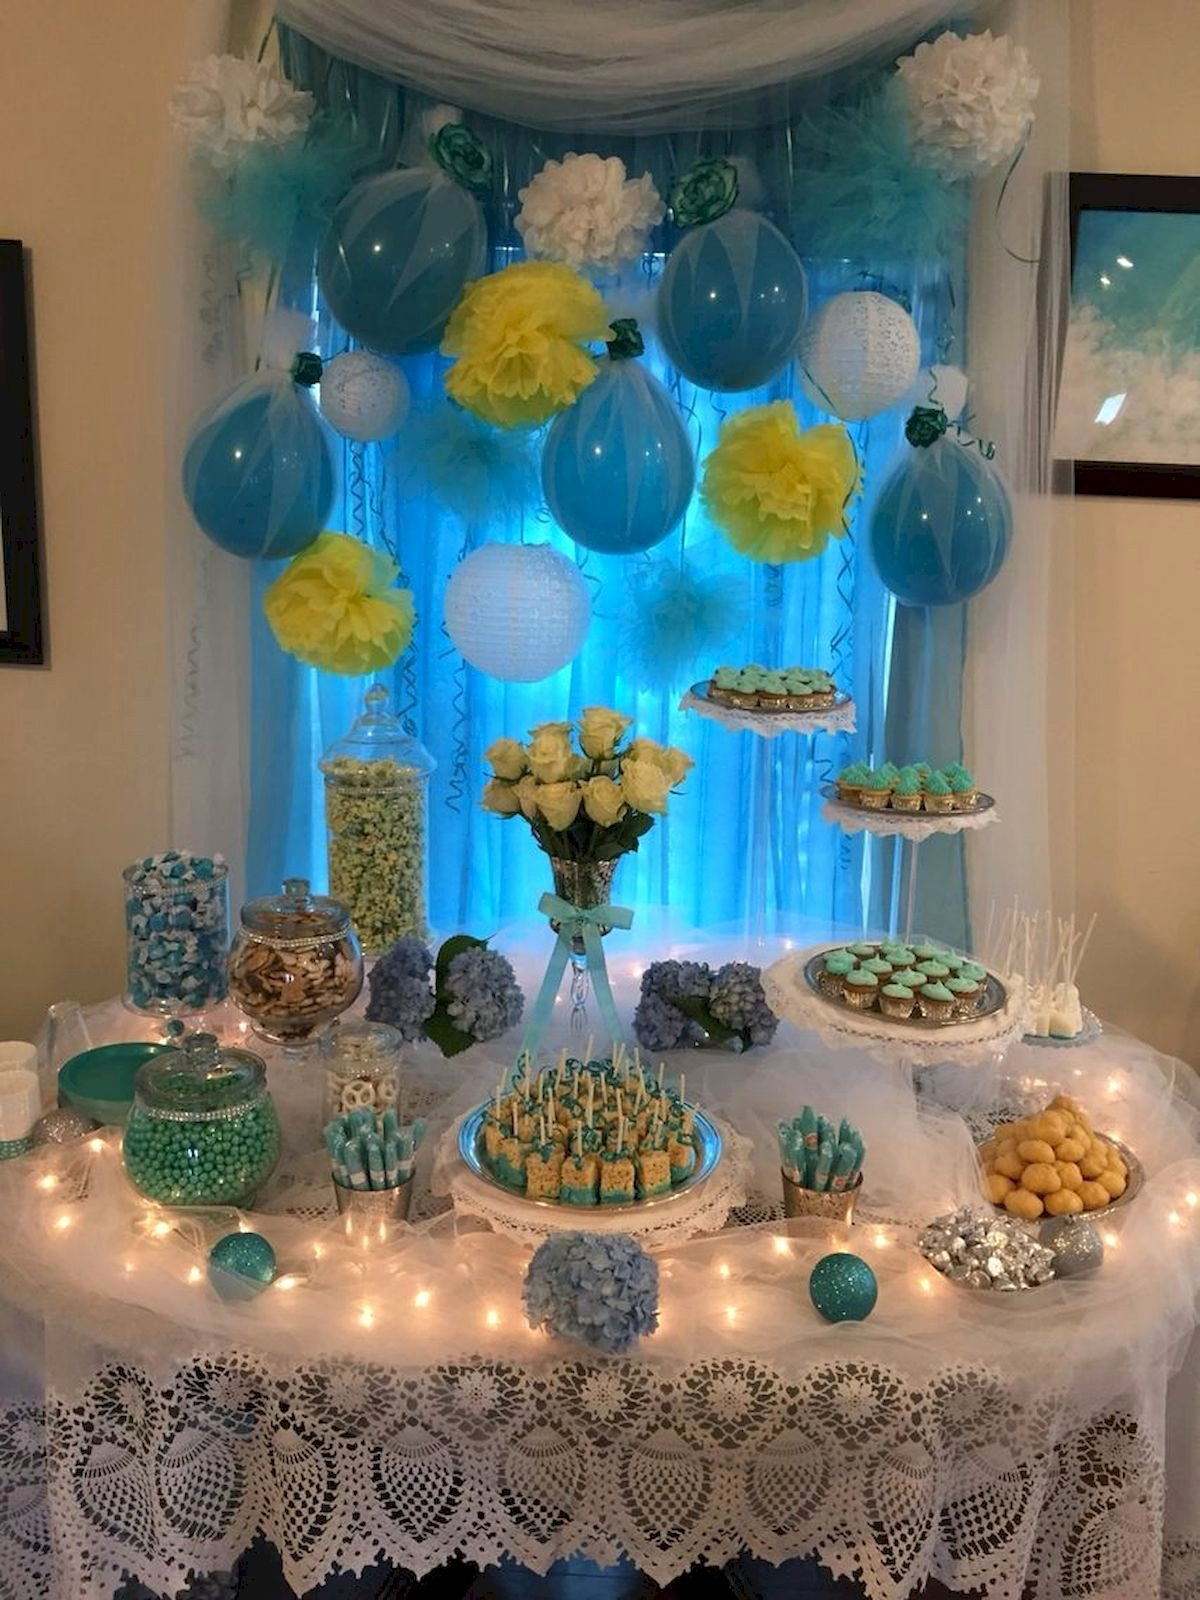 Birthday Decoration Ideas for Baby Boy at Home Awesome 50 Awesome Baby Shower themes and Decorating Ideas for Baby